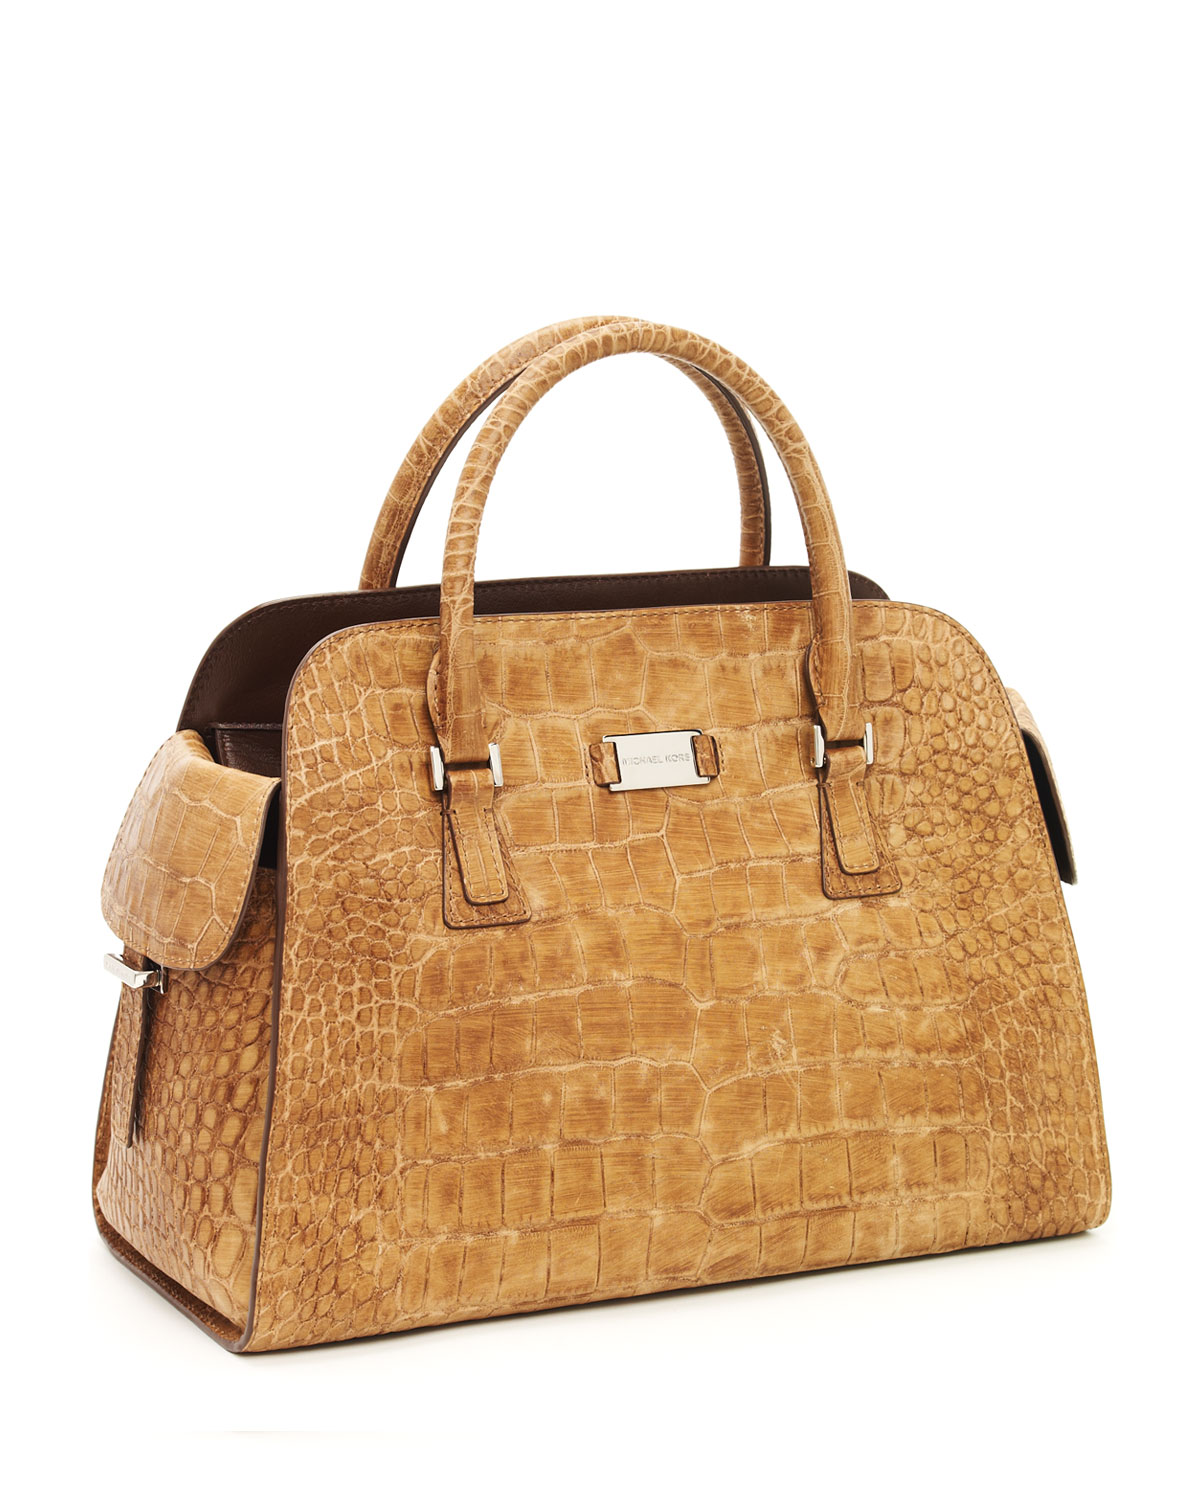 5a9fdf545d8 Lyst - Michael Kors Gia Satchel in Natural